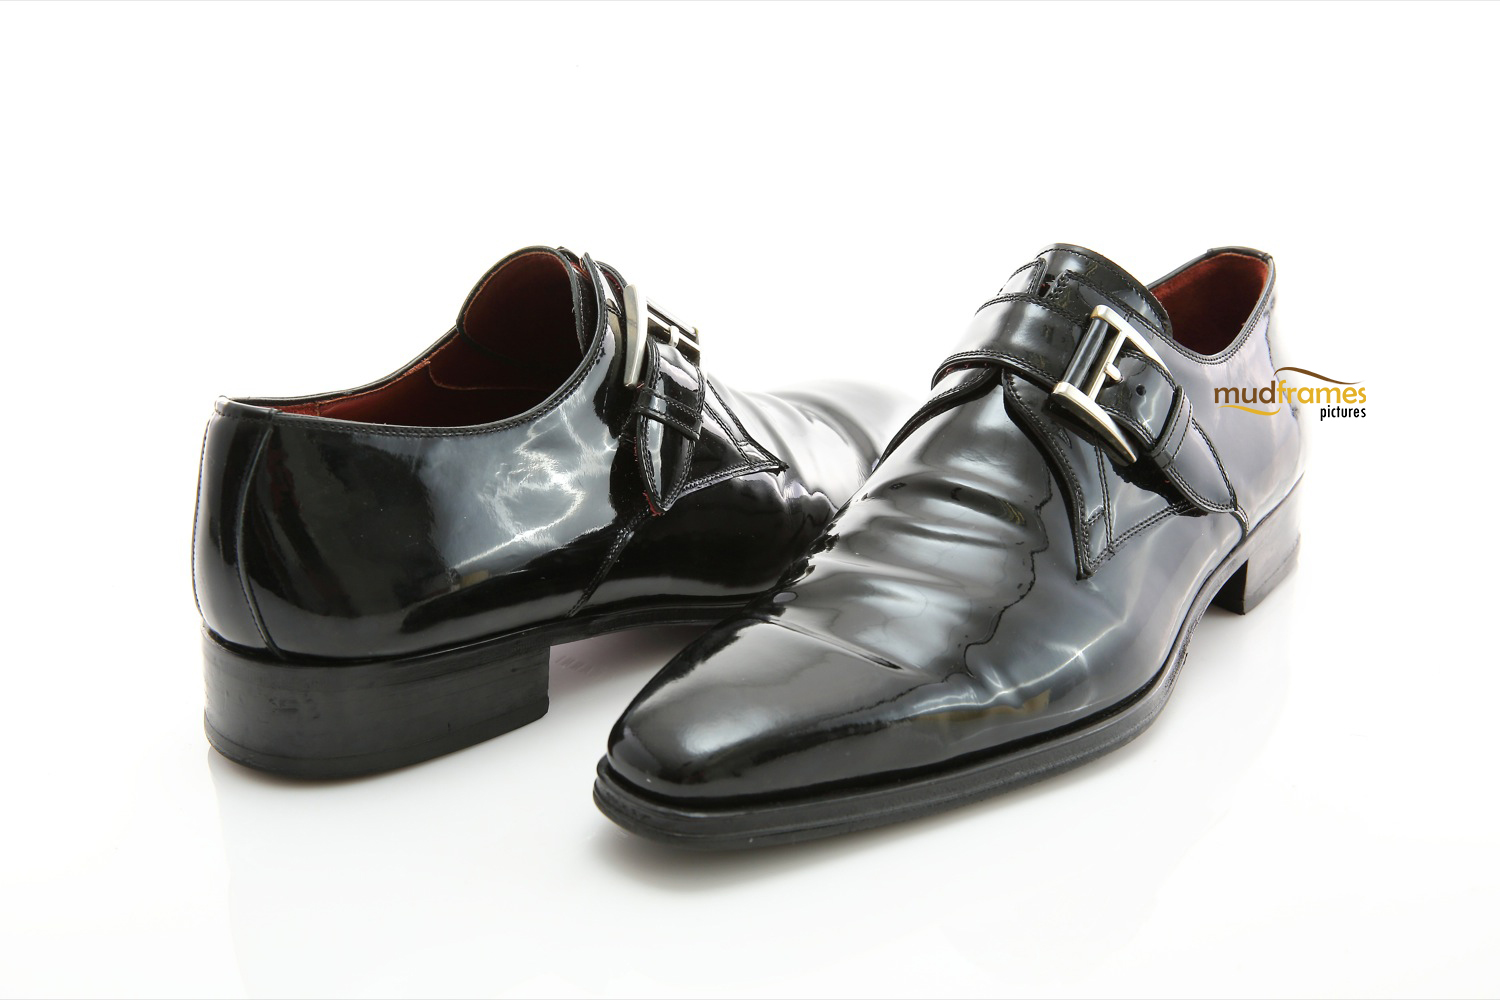 Glossy black shoes on white background